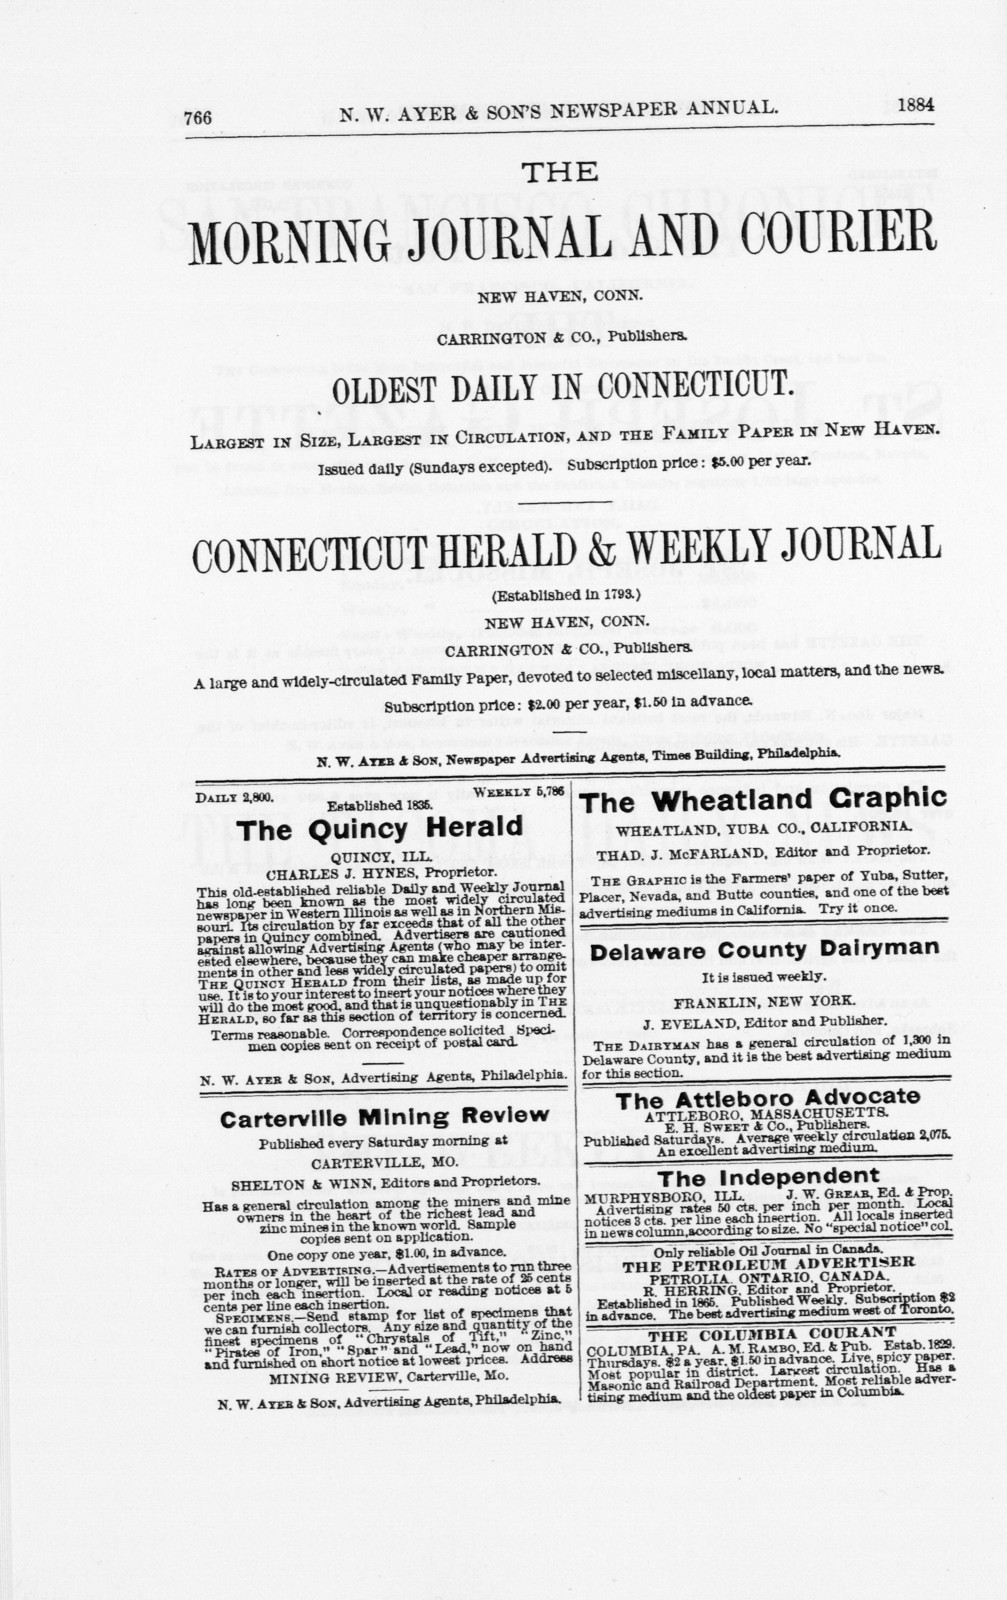 N.W. Ayer & Son's American newspaper annual. 1890. Part I.